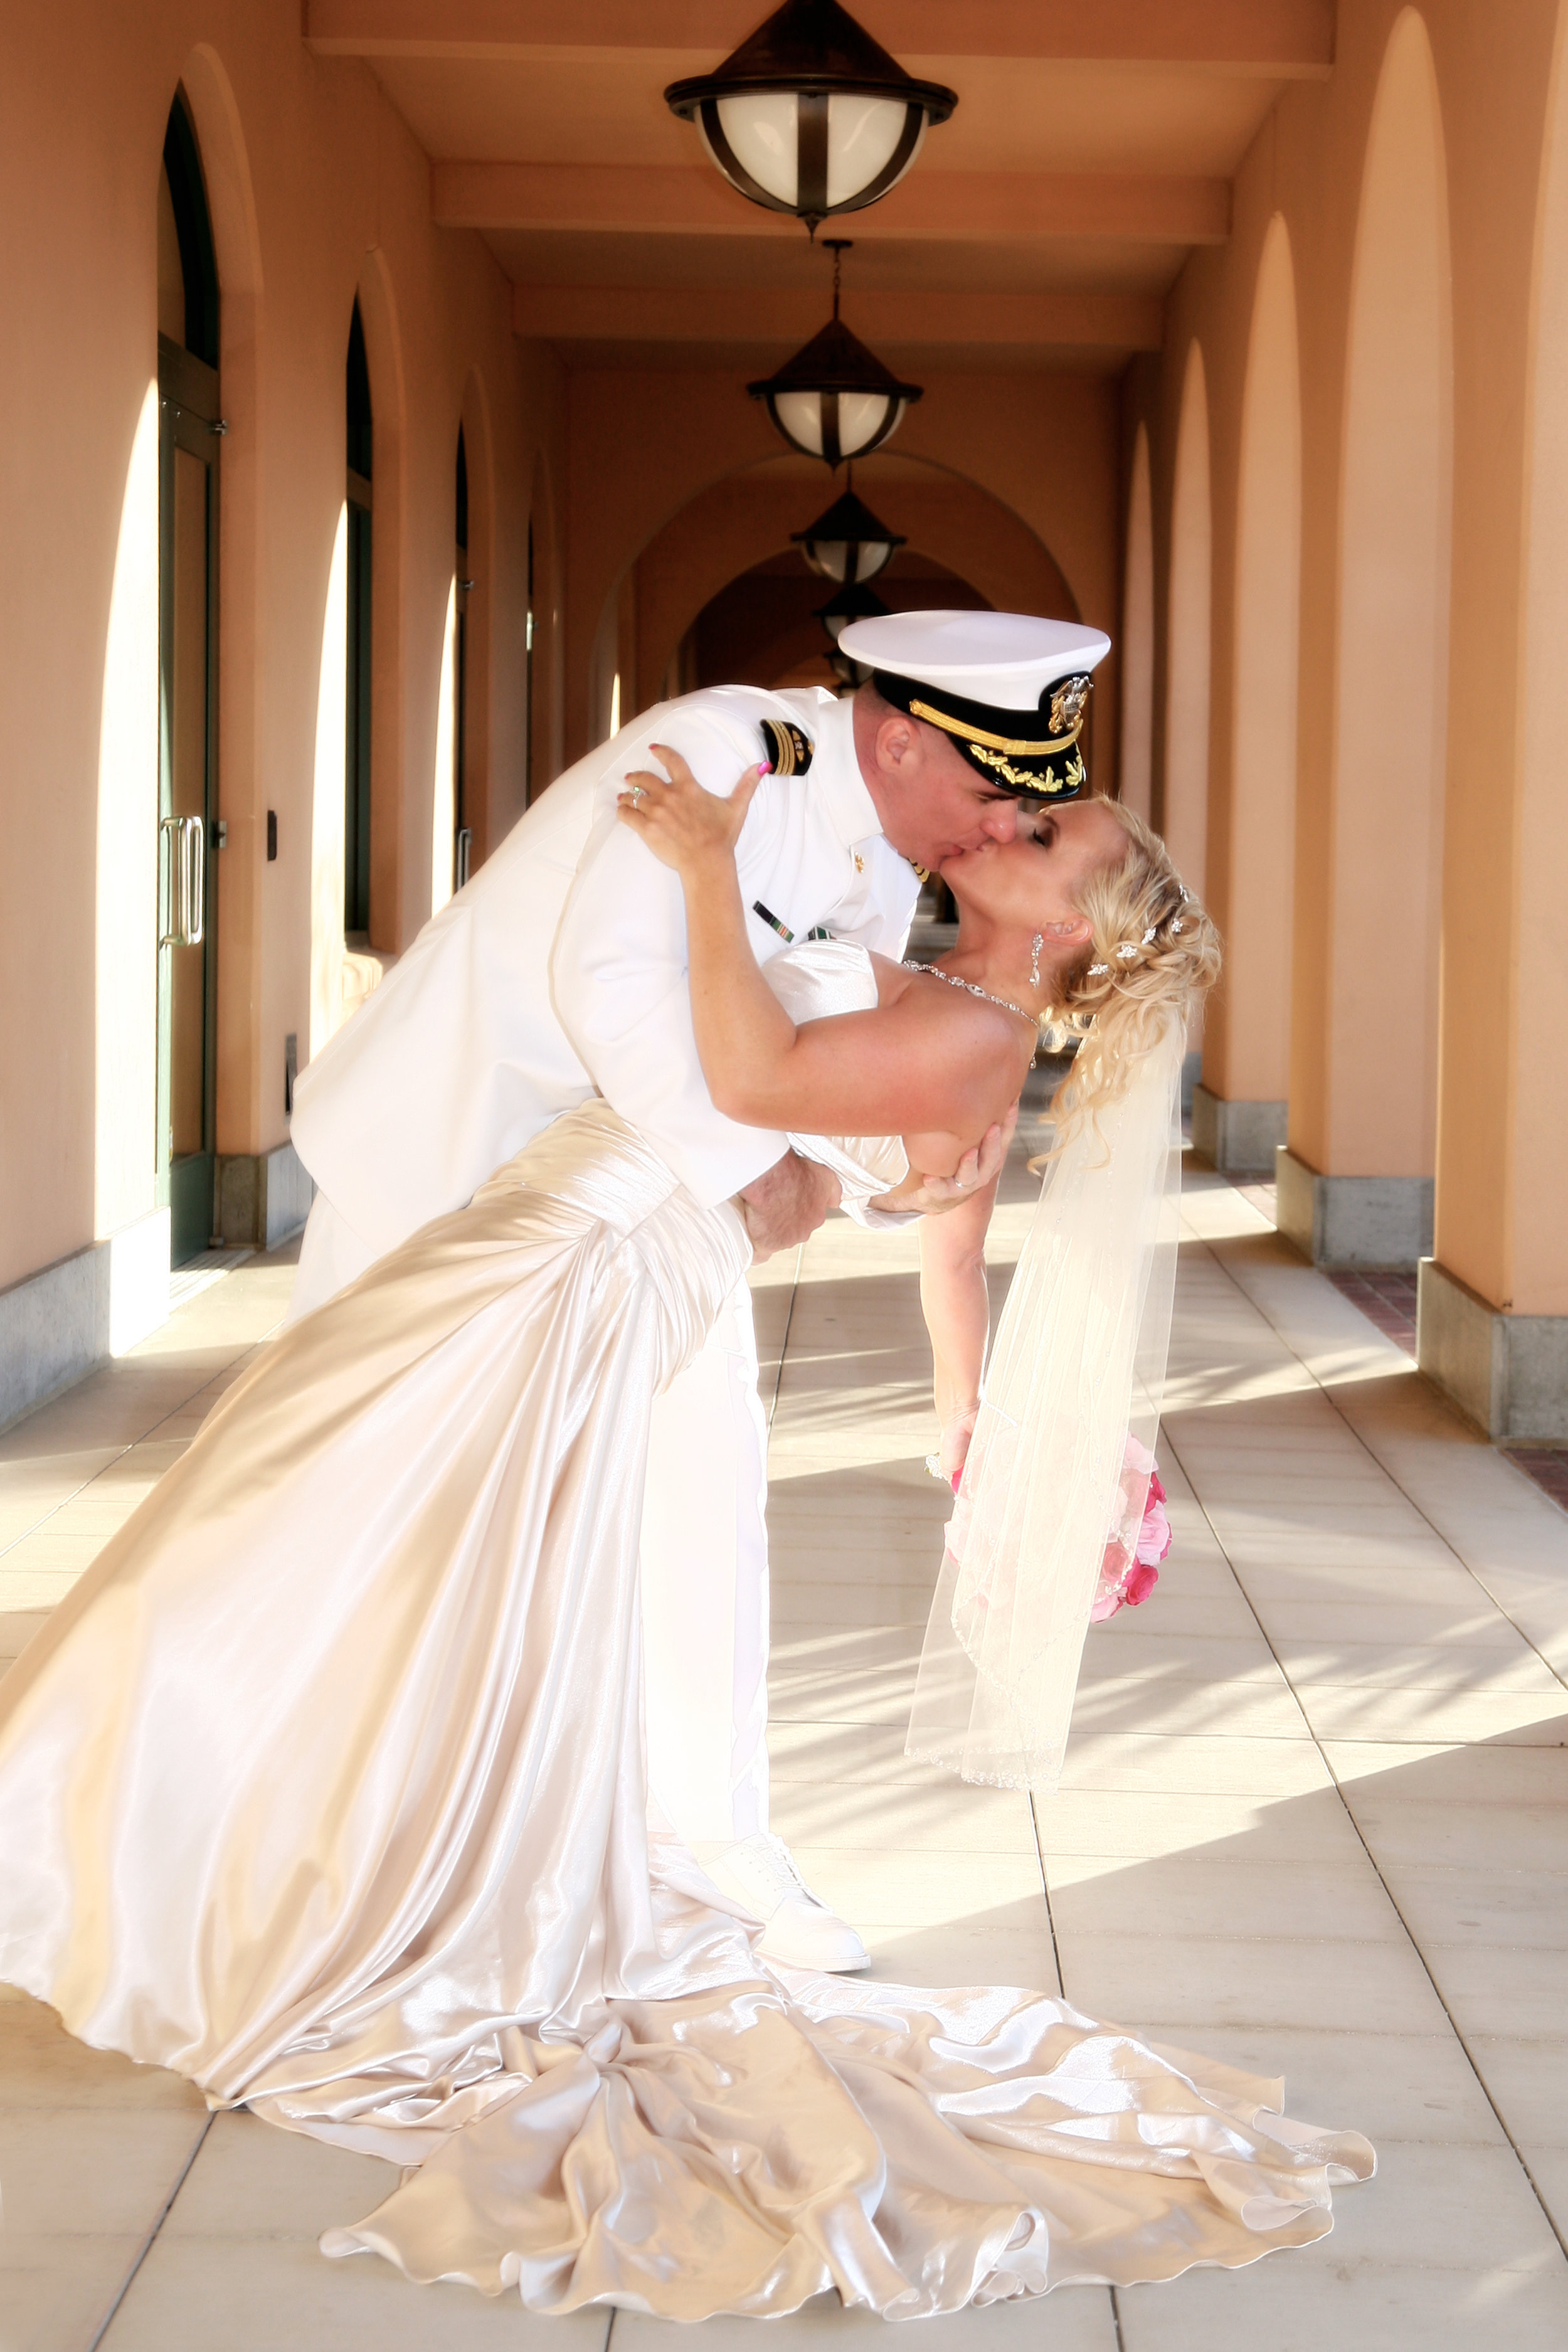 ShadowcatcherGalleryOne_SanDiegoWeddingPhotogrpaher_073.JPG